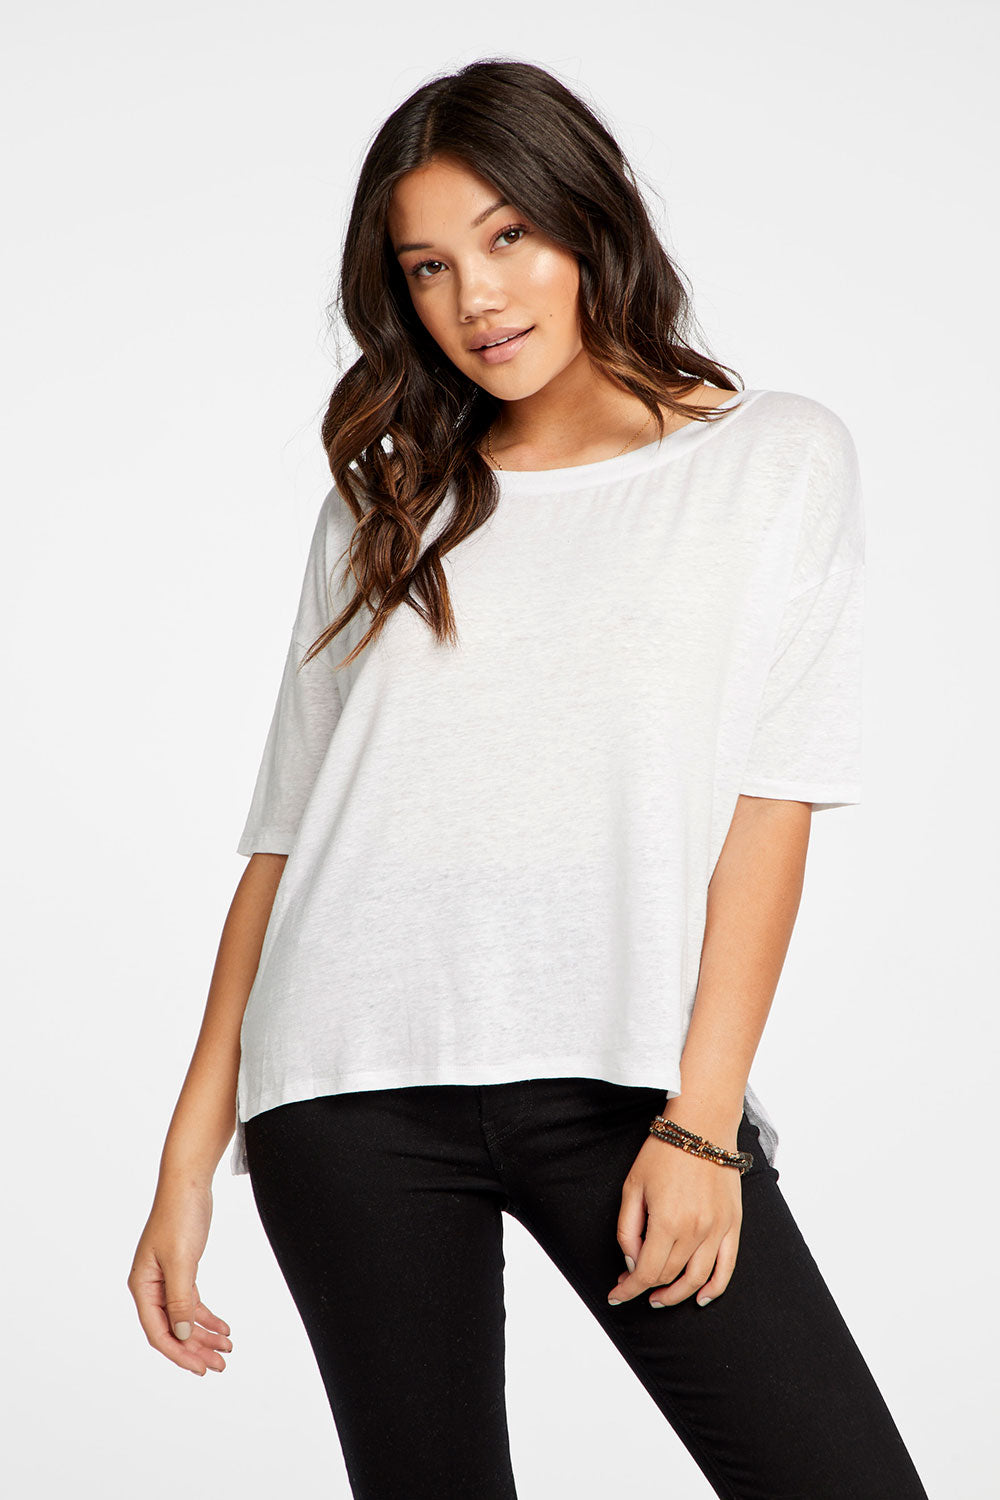 Linen Jersey Cropped Short Sleeve Boxy Hi Lo Tee WOMENS chaserbrand4.myshopify.com